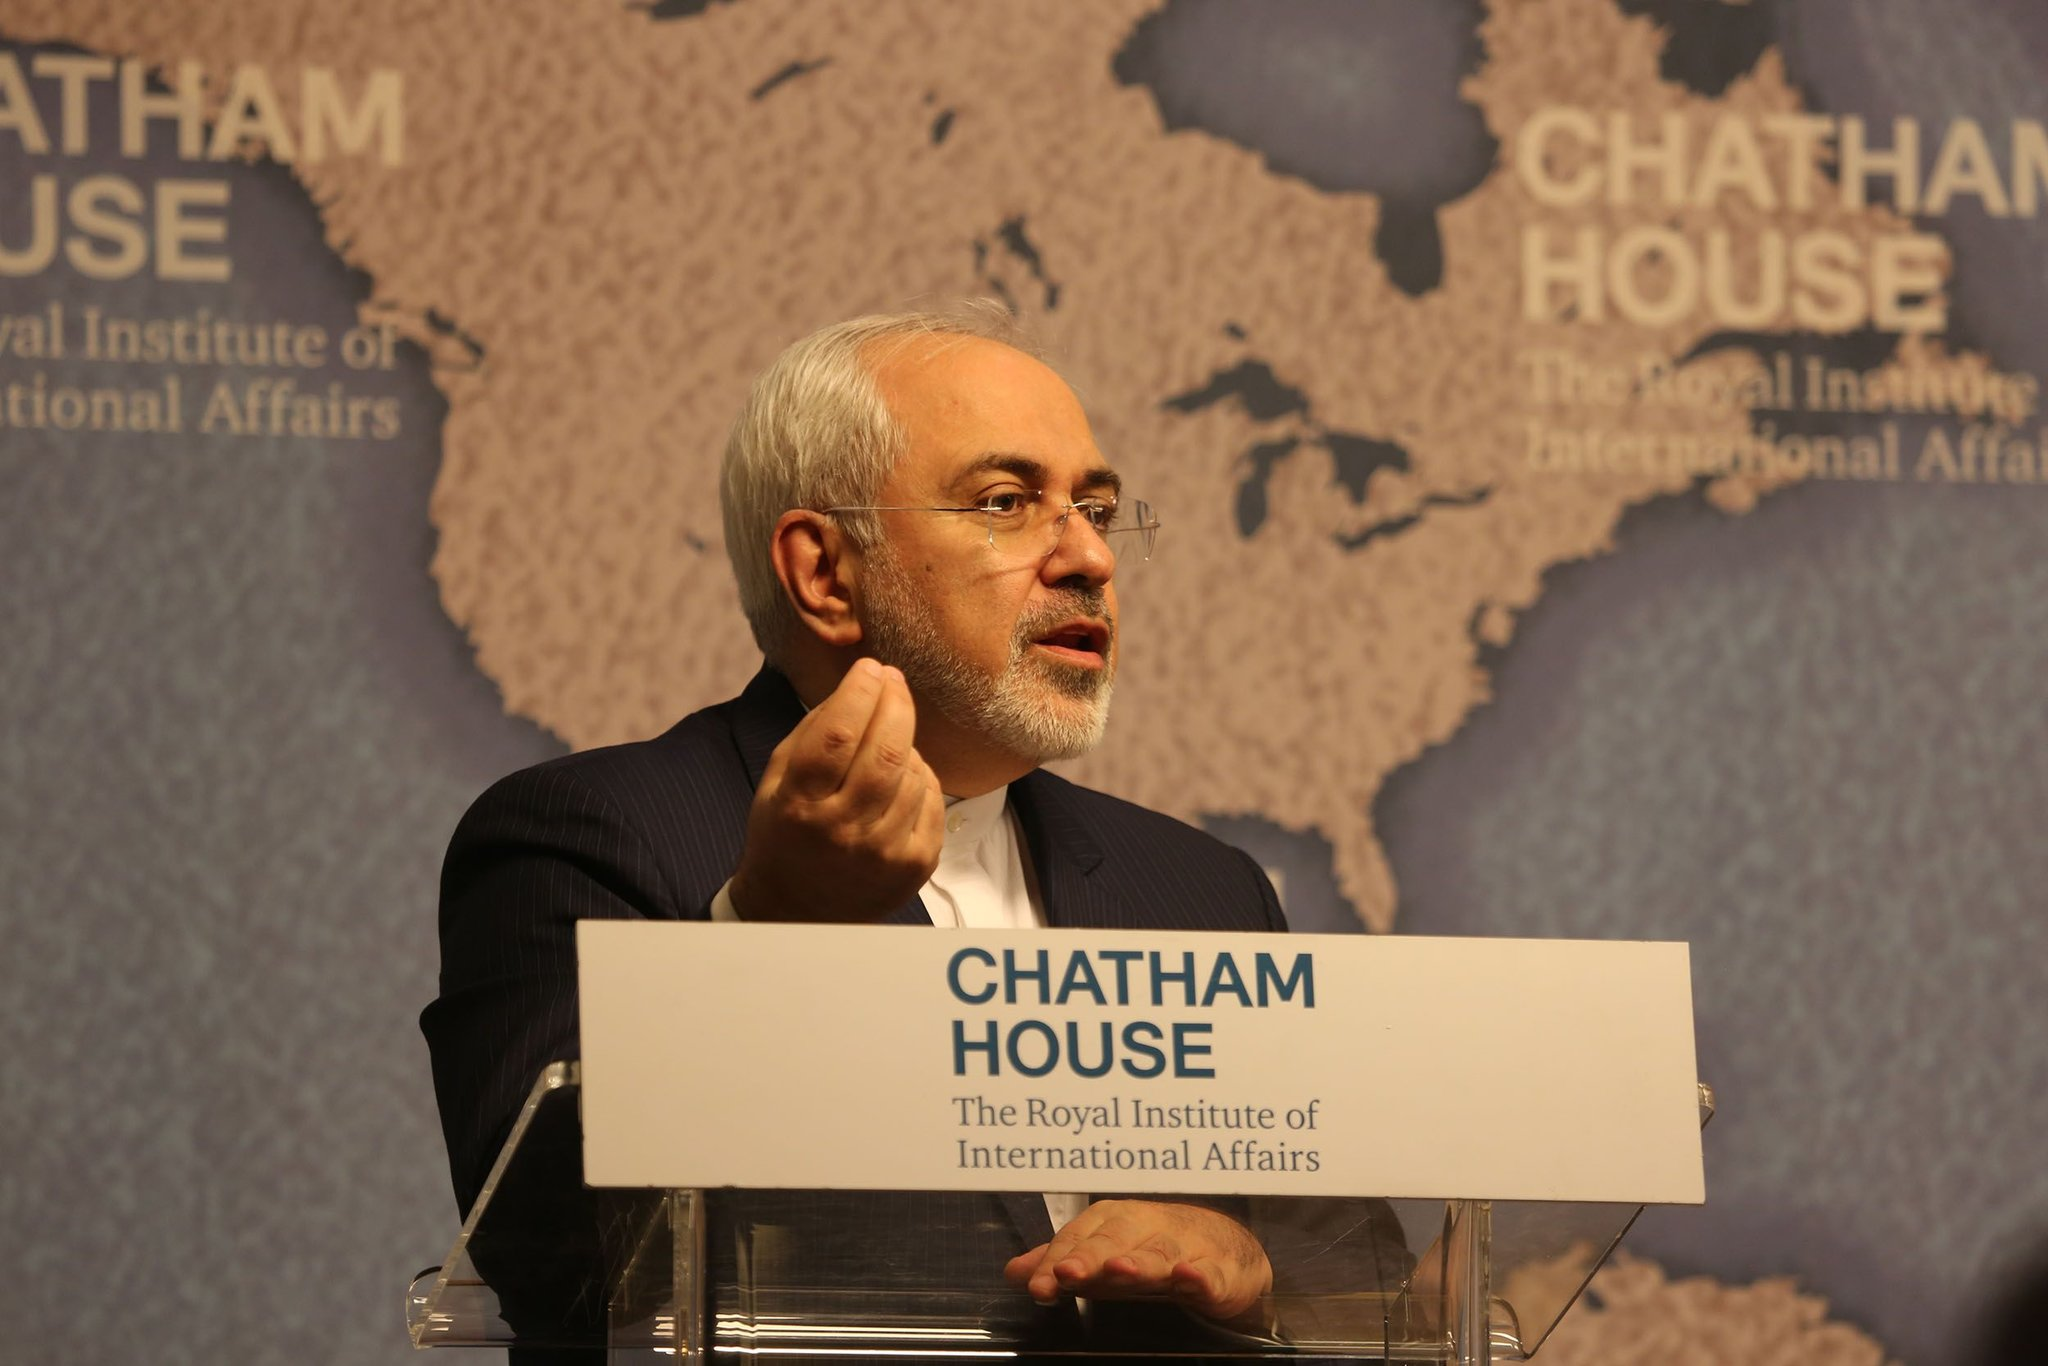 Мохаммад Джавад Зариф , автор: Chatham House, London [chathamhouse], лицензия: CC BY 2.0